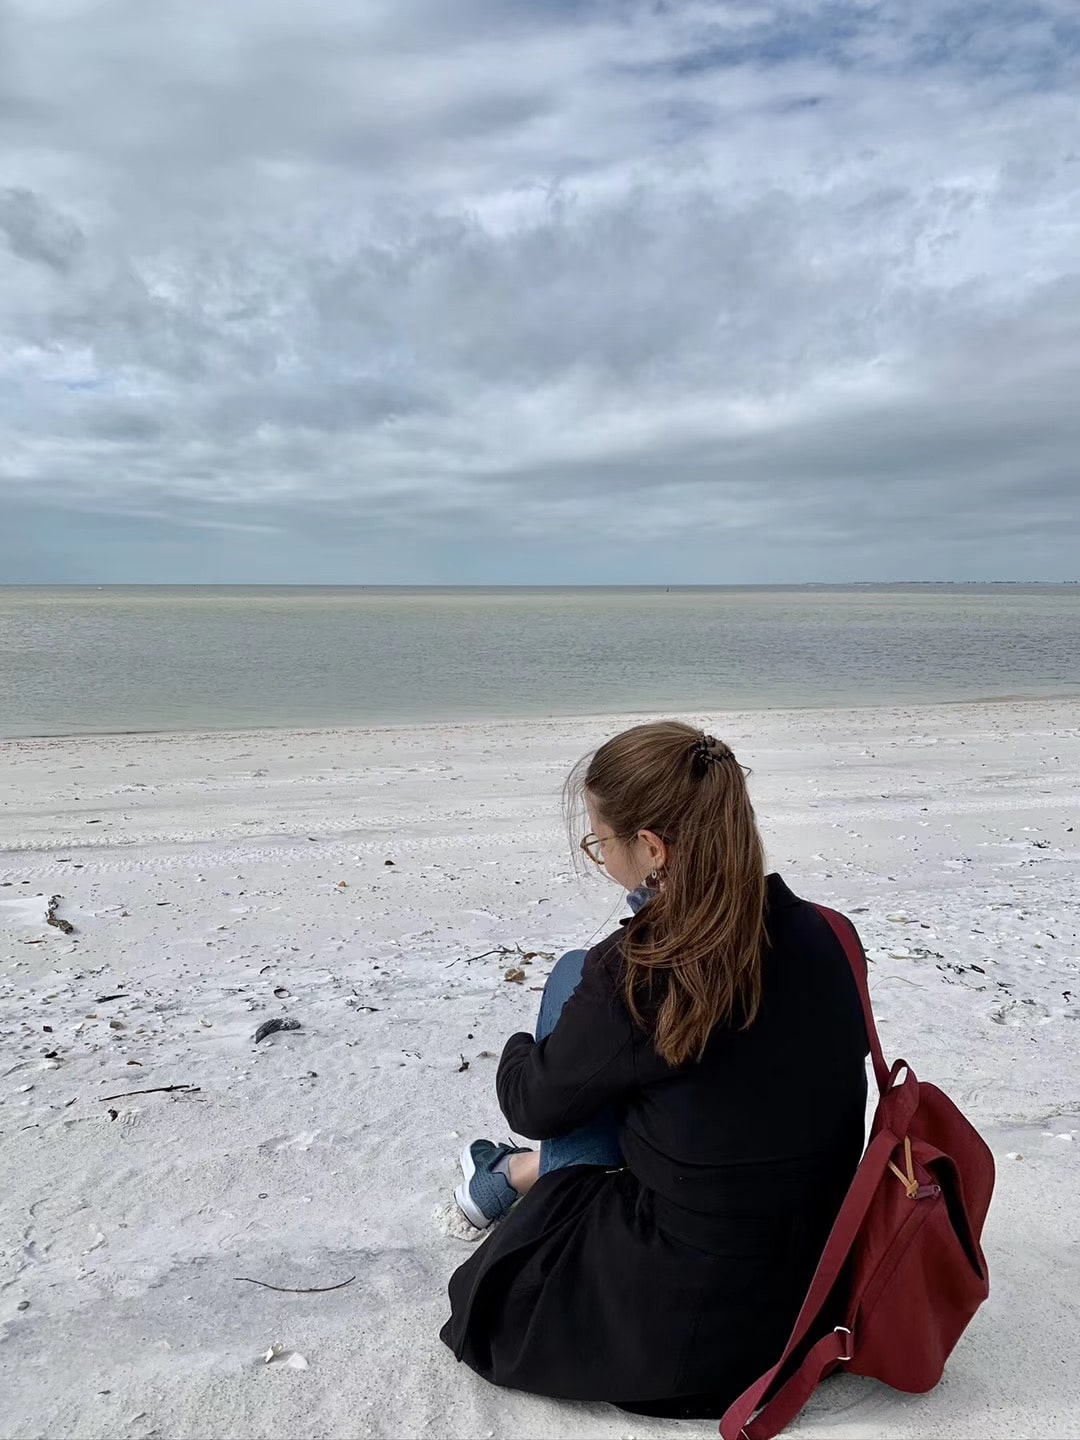 Johanna Pallmann looks out at the water while sitting on the beach.